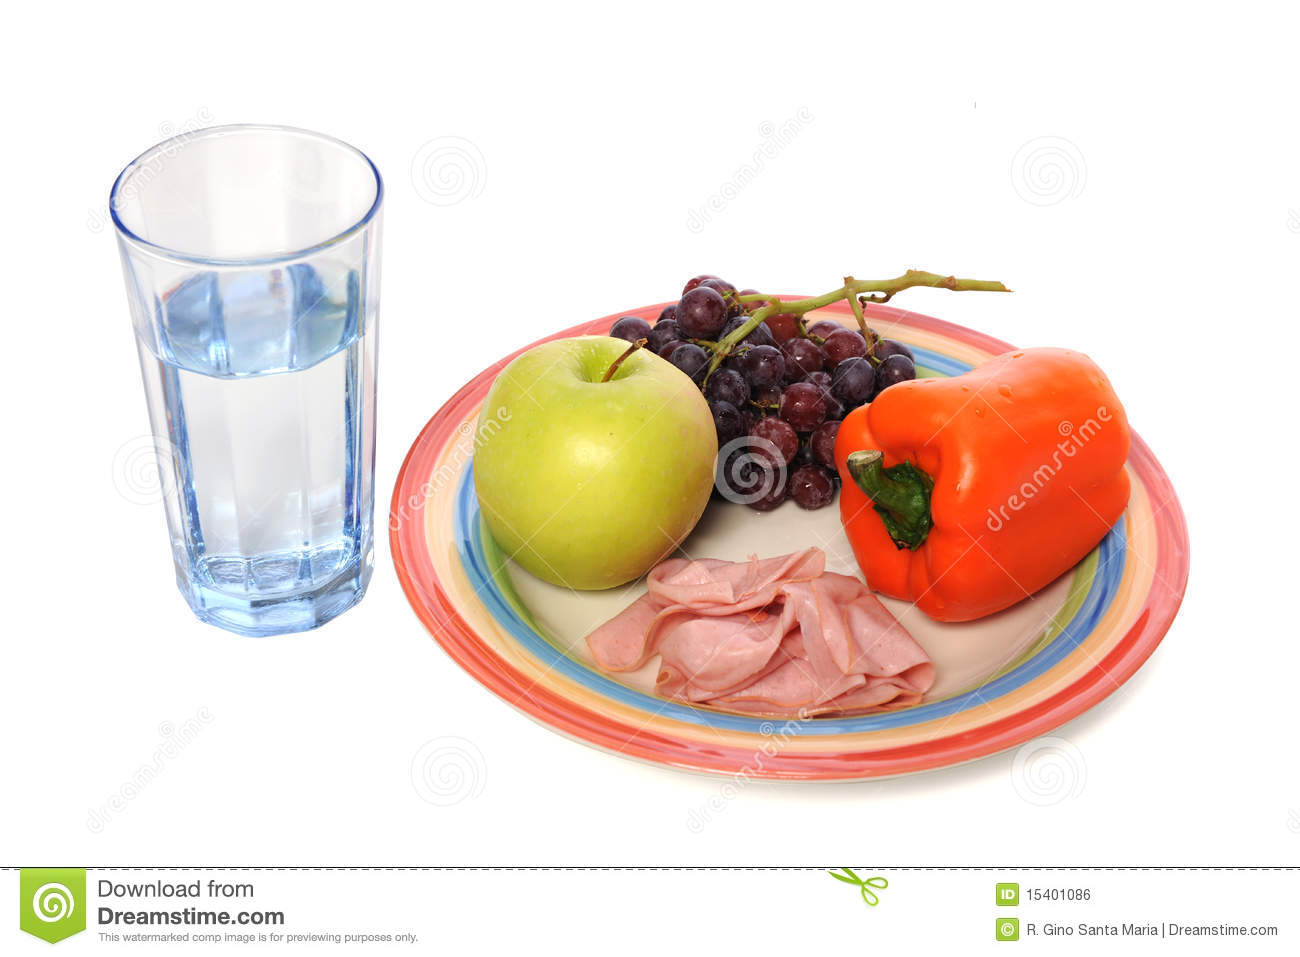 Food And Drink: Healthy Food And Drink Royalty Free Stock Image